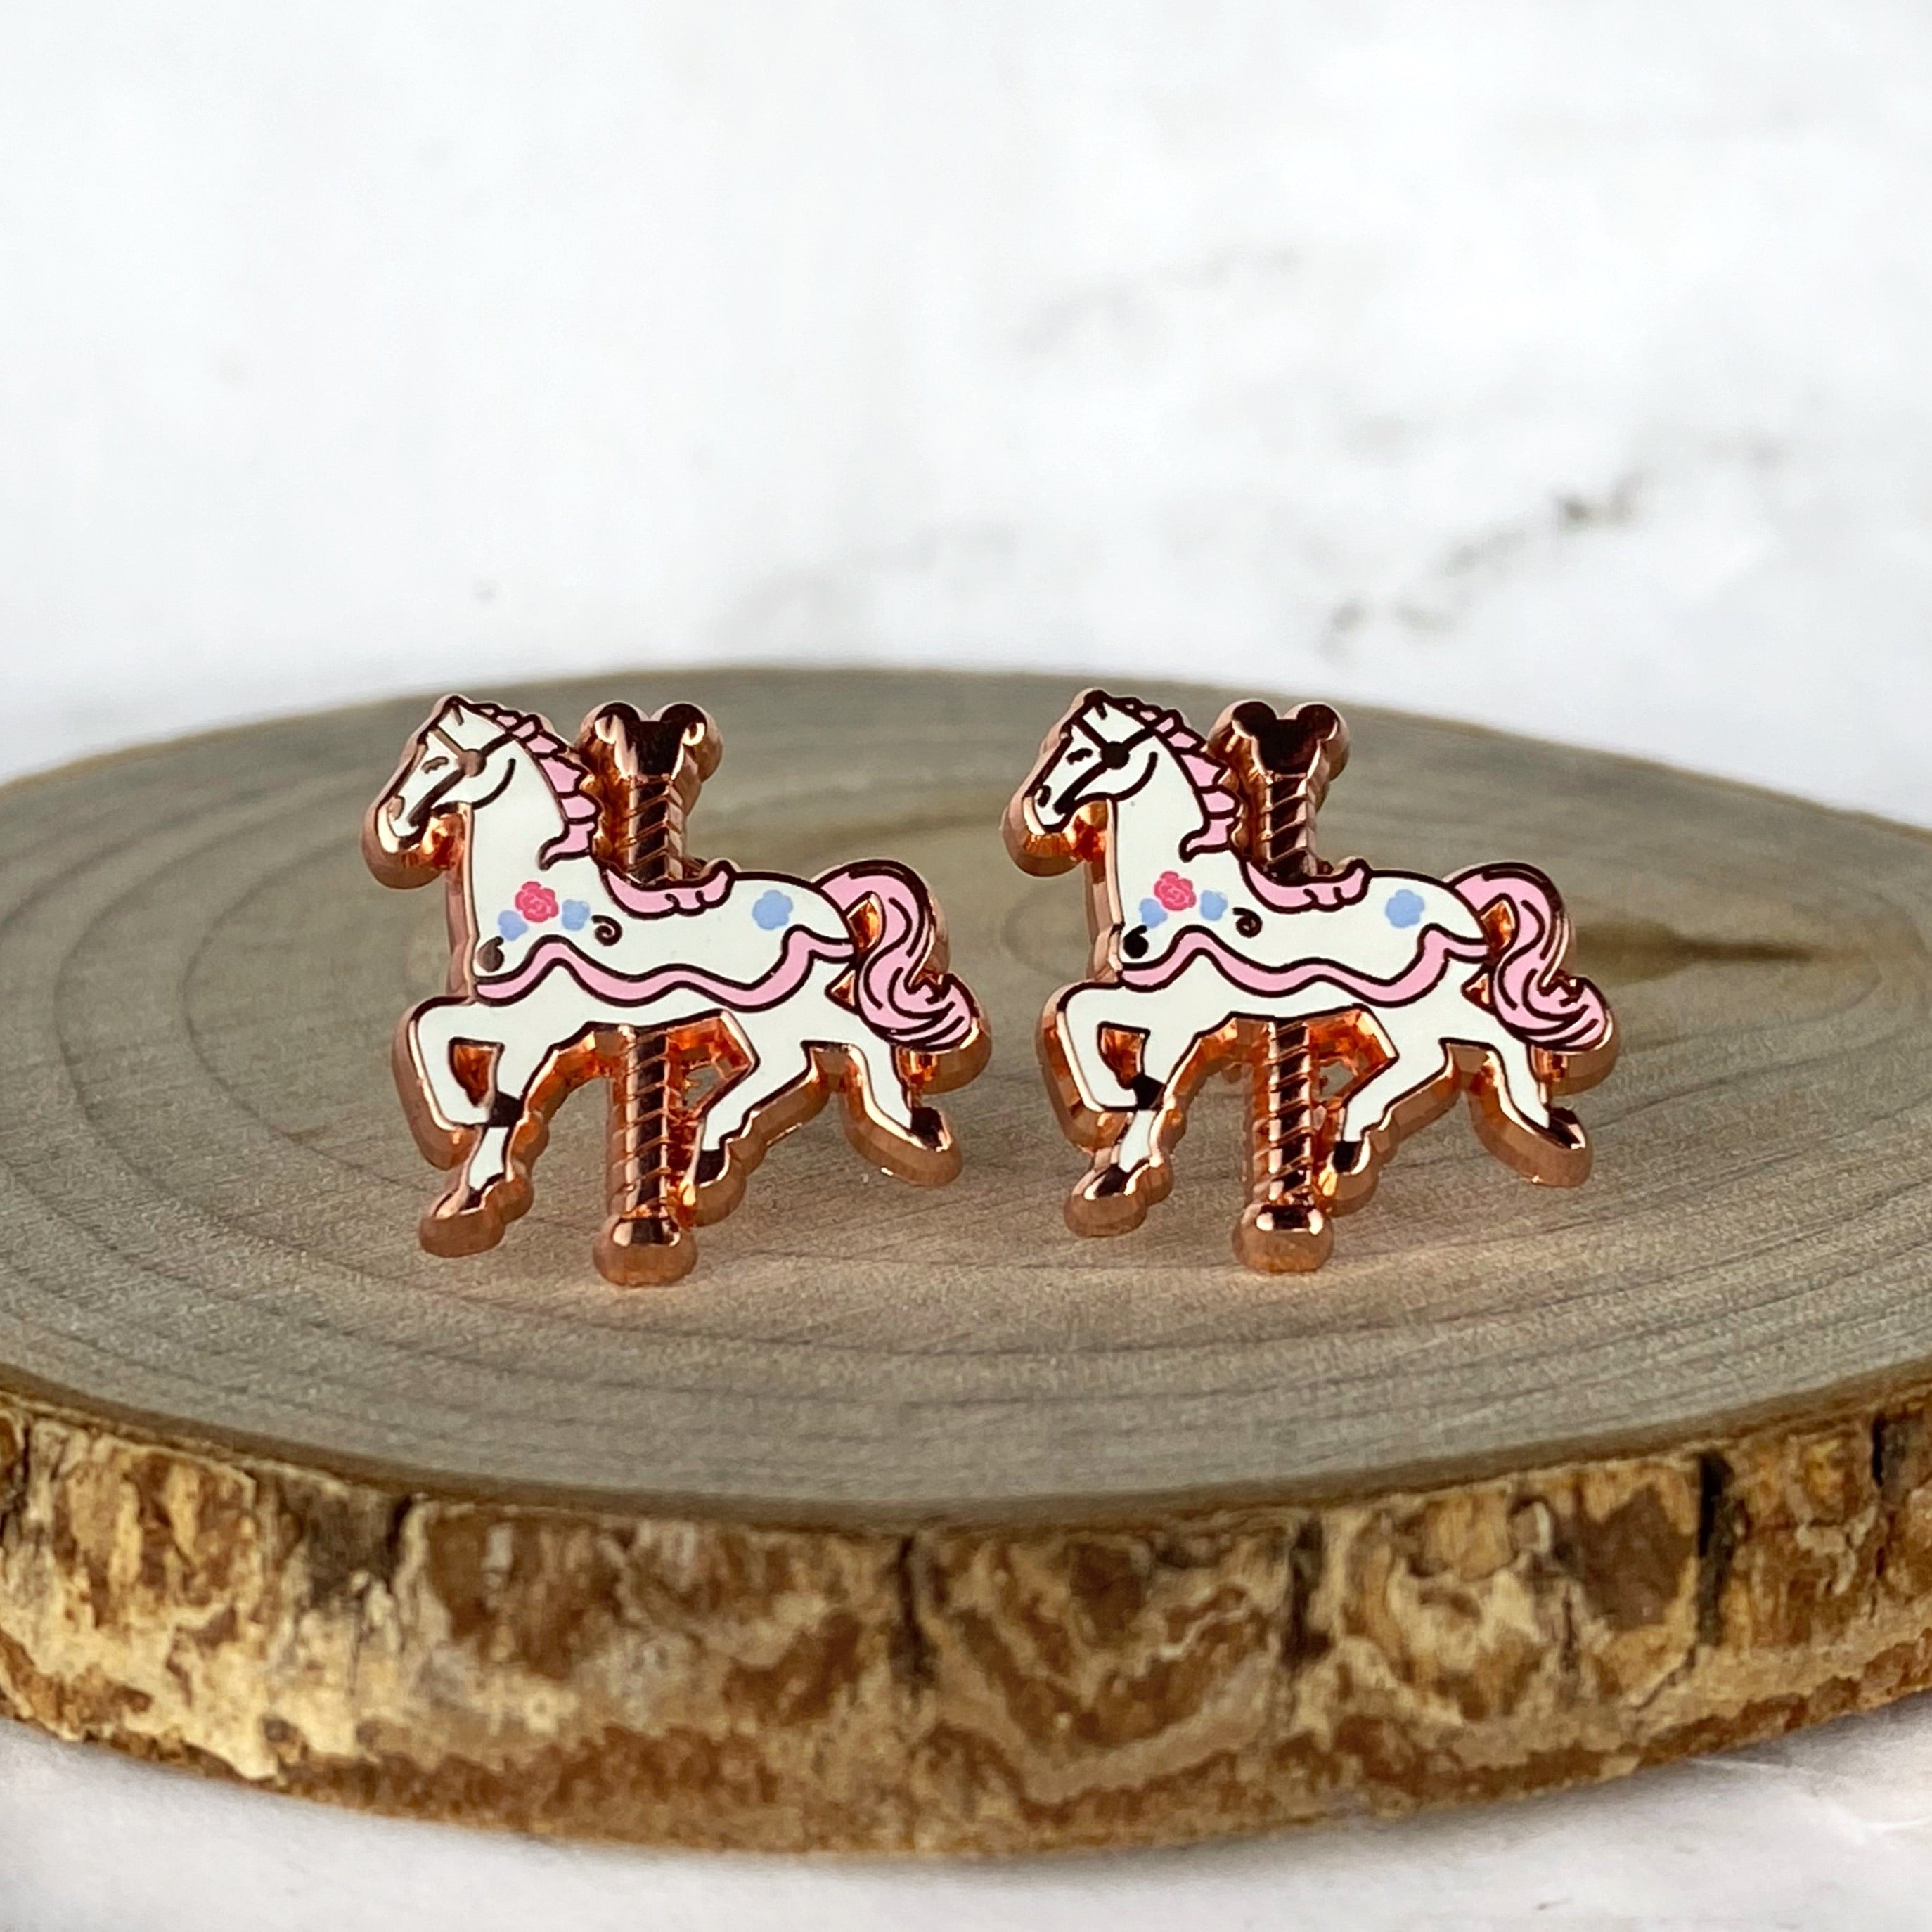 Earrings - Carousel Horse READY TO SHIP